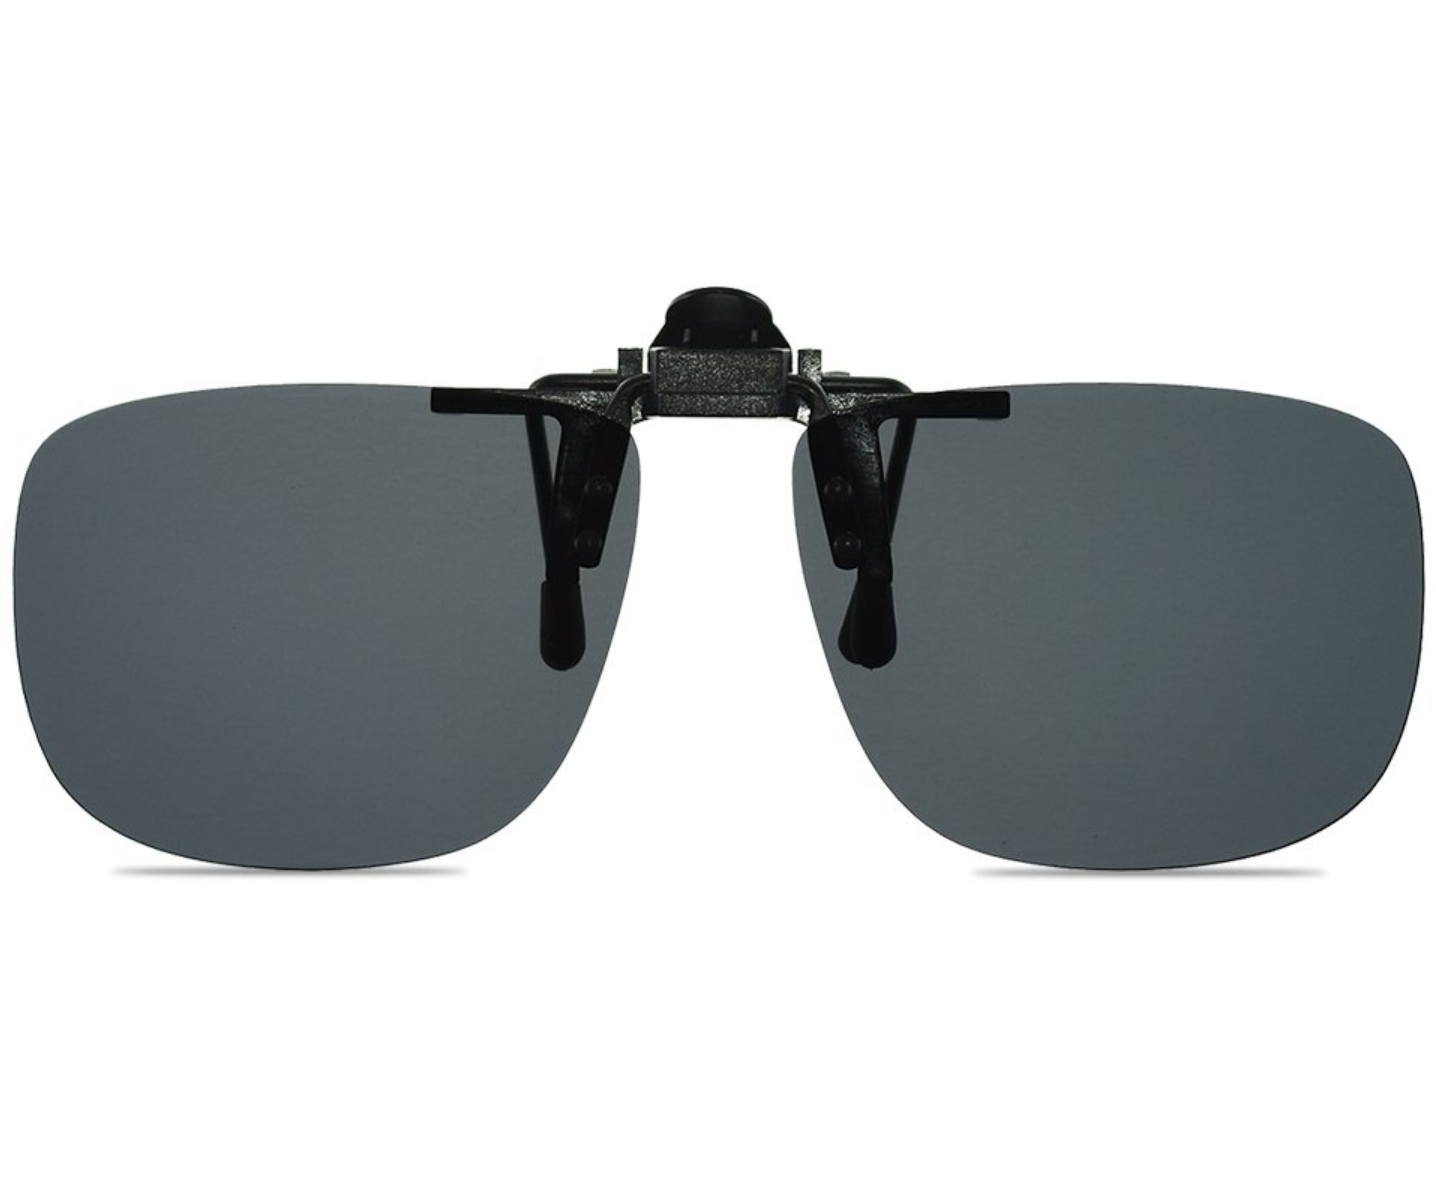 Vuzix Blade Sunglasses Clip-on